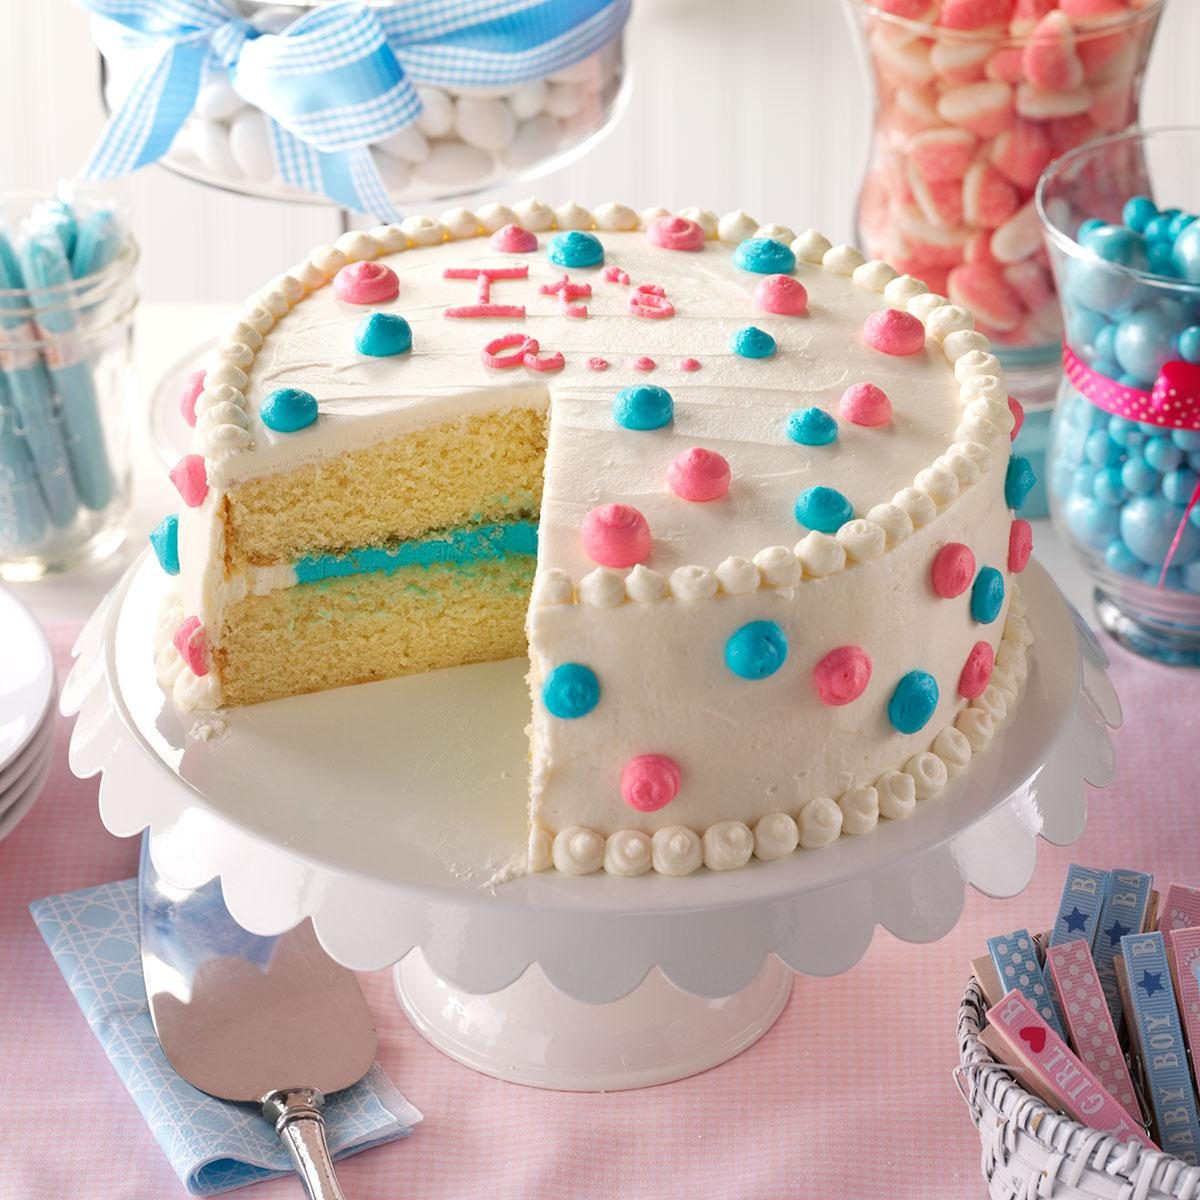 Food Ideas For Baby Gender Reveal Party  The Cutest Gender Reveal Party Food Ideas